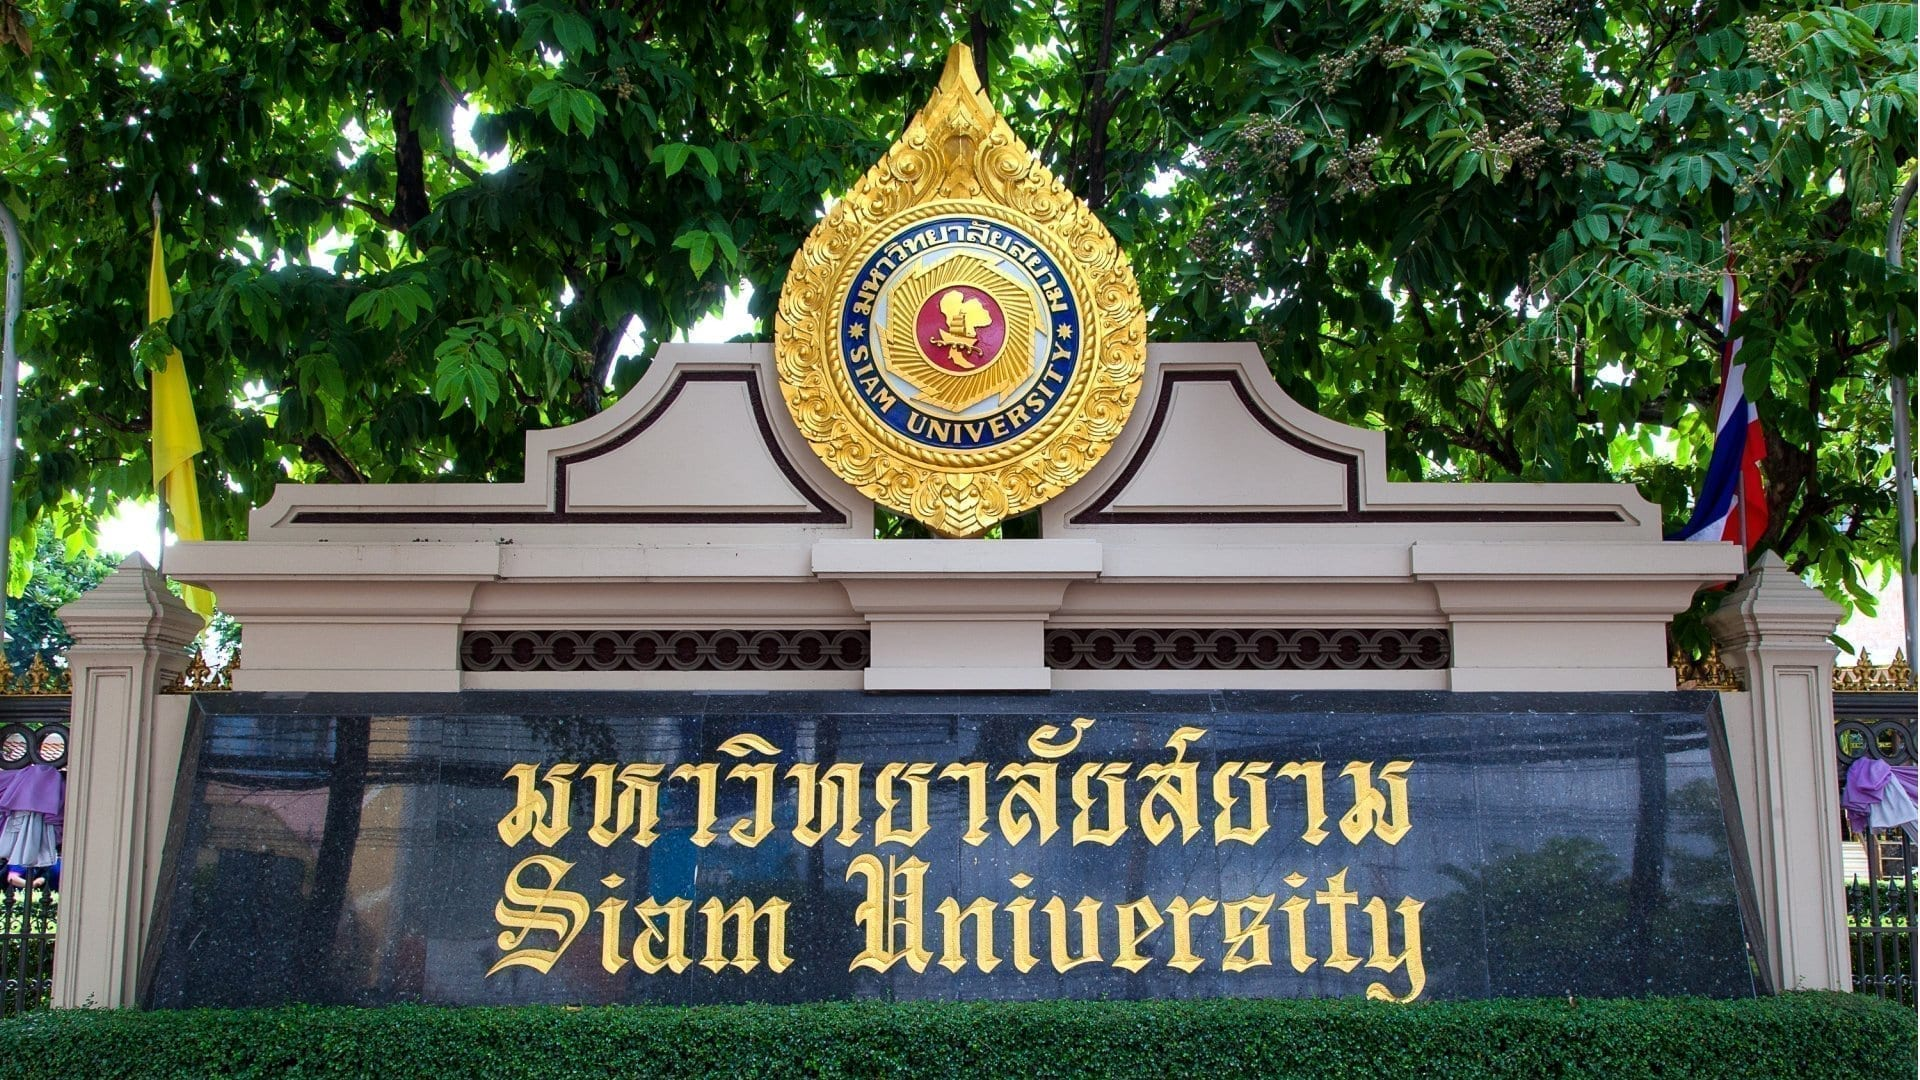 A picture of the name plate of Siam University written in Thai and English and a golden symbol on top in Bangkok..